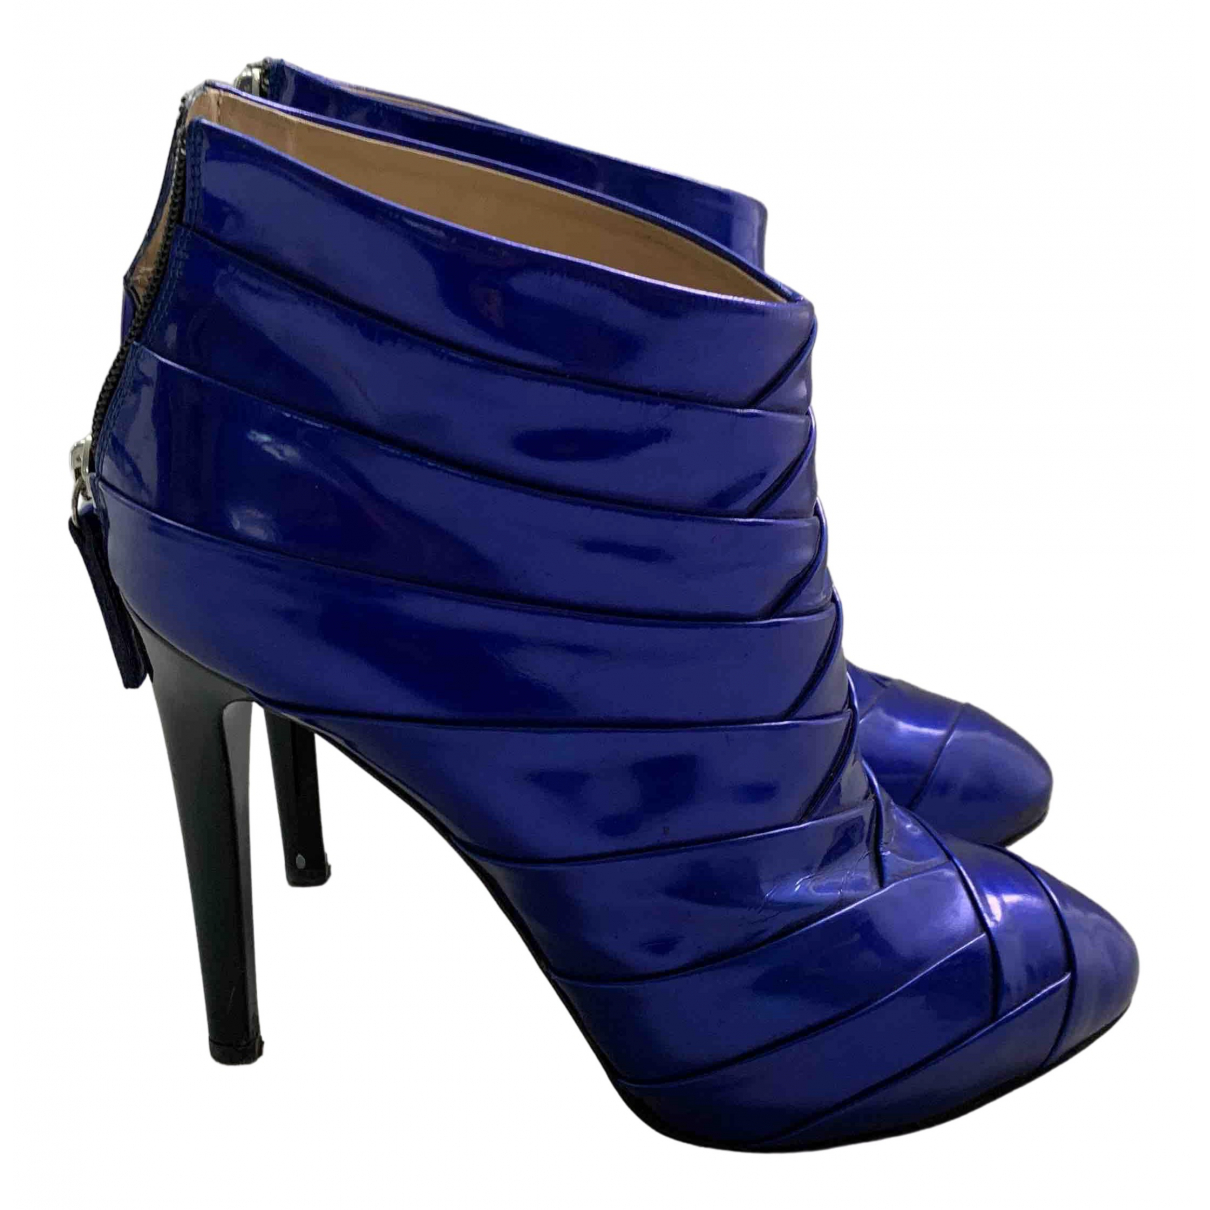 Giuseppe Zanotti \N Blue Patent leather Ankle boots for Women 39.5 EU